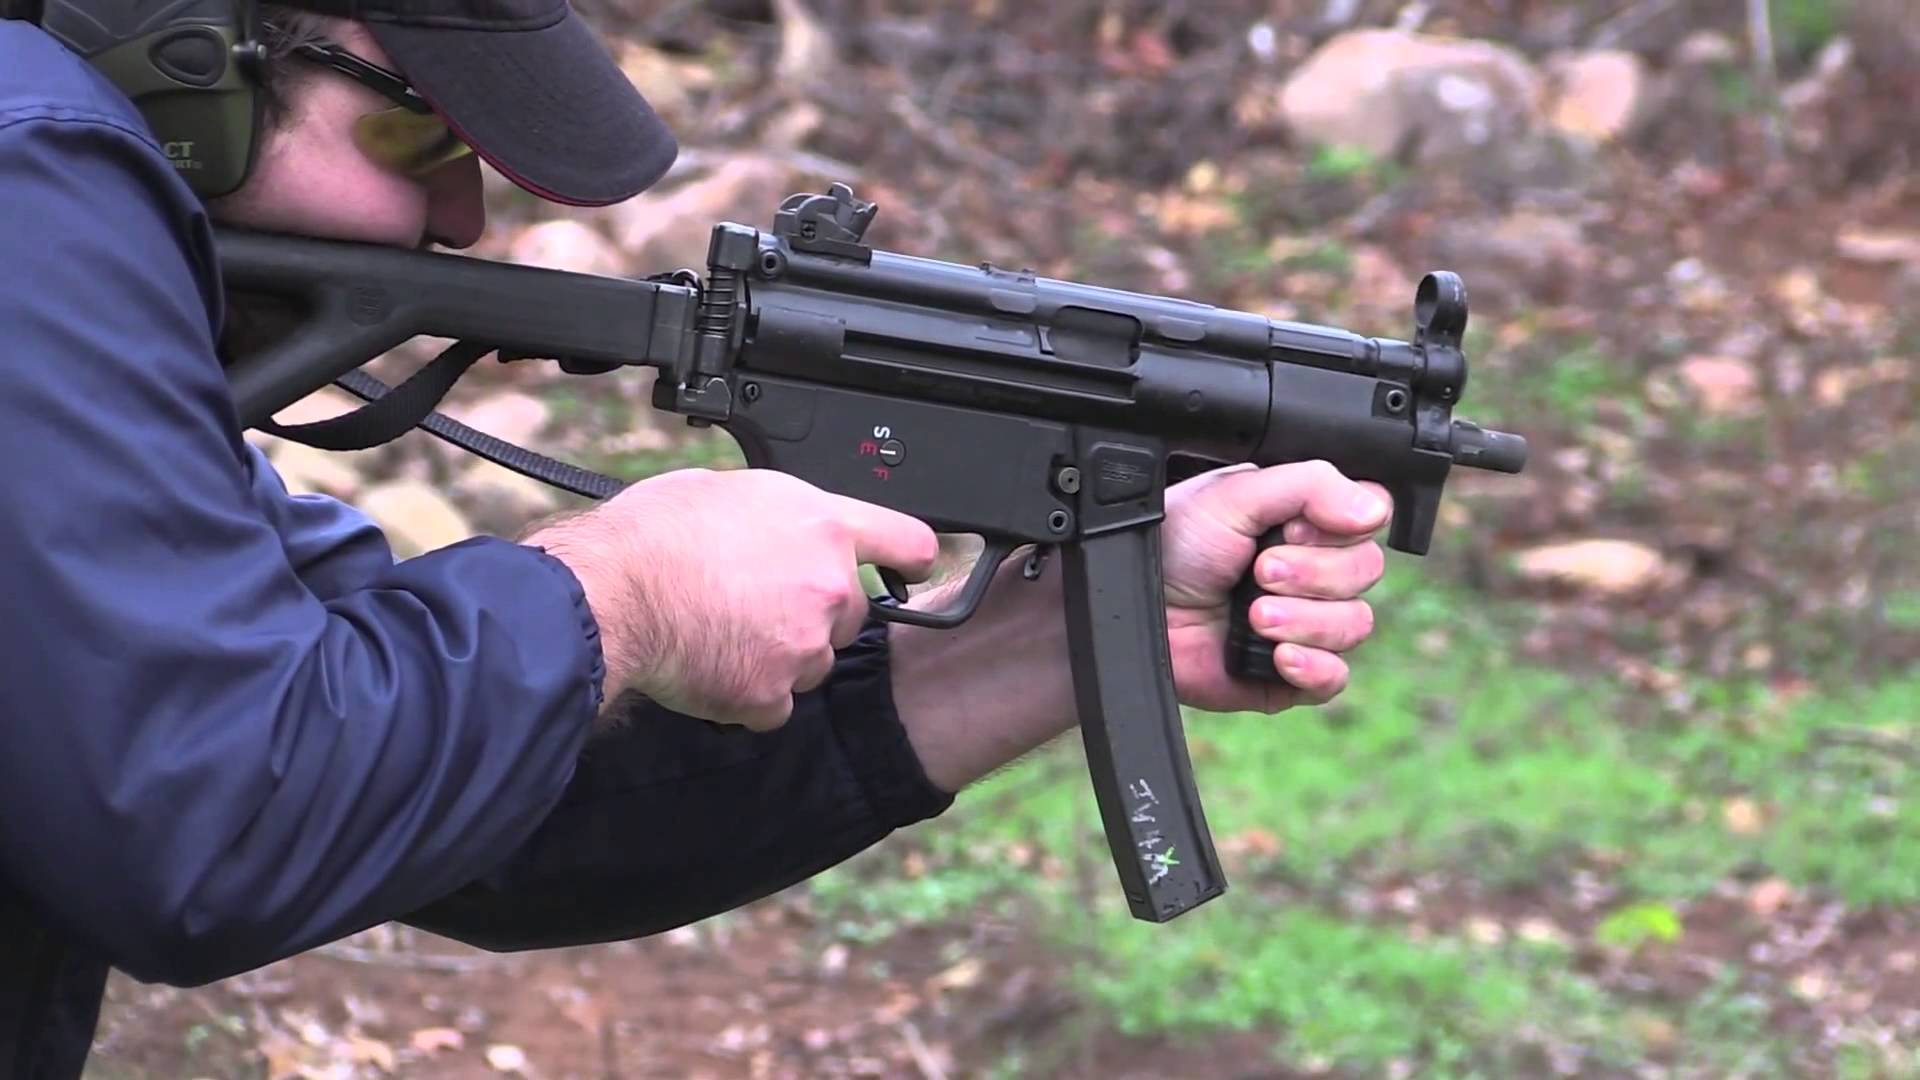 HK MP5 K PDW Full Auto Demonstration and Overview